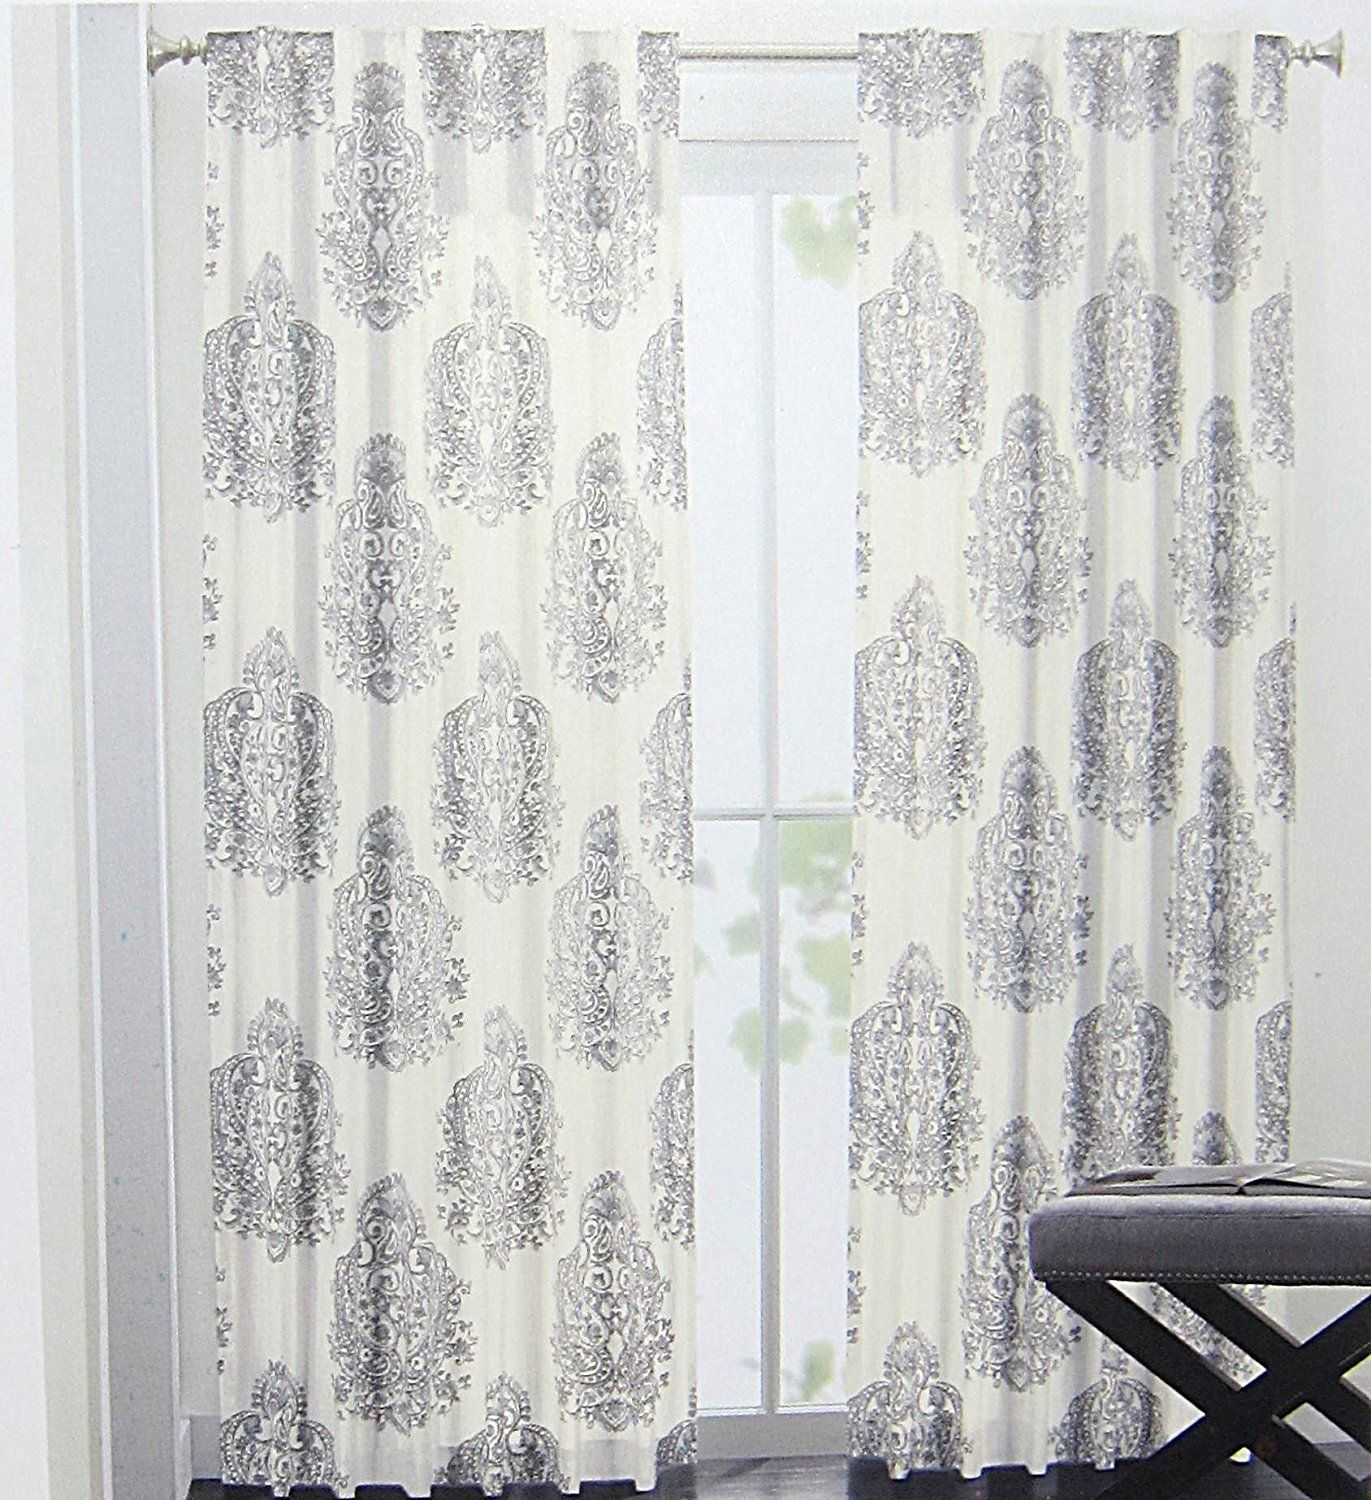 floral window curtains ideas for drapes decorating and sheer interesting inch using